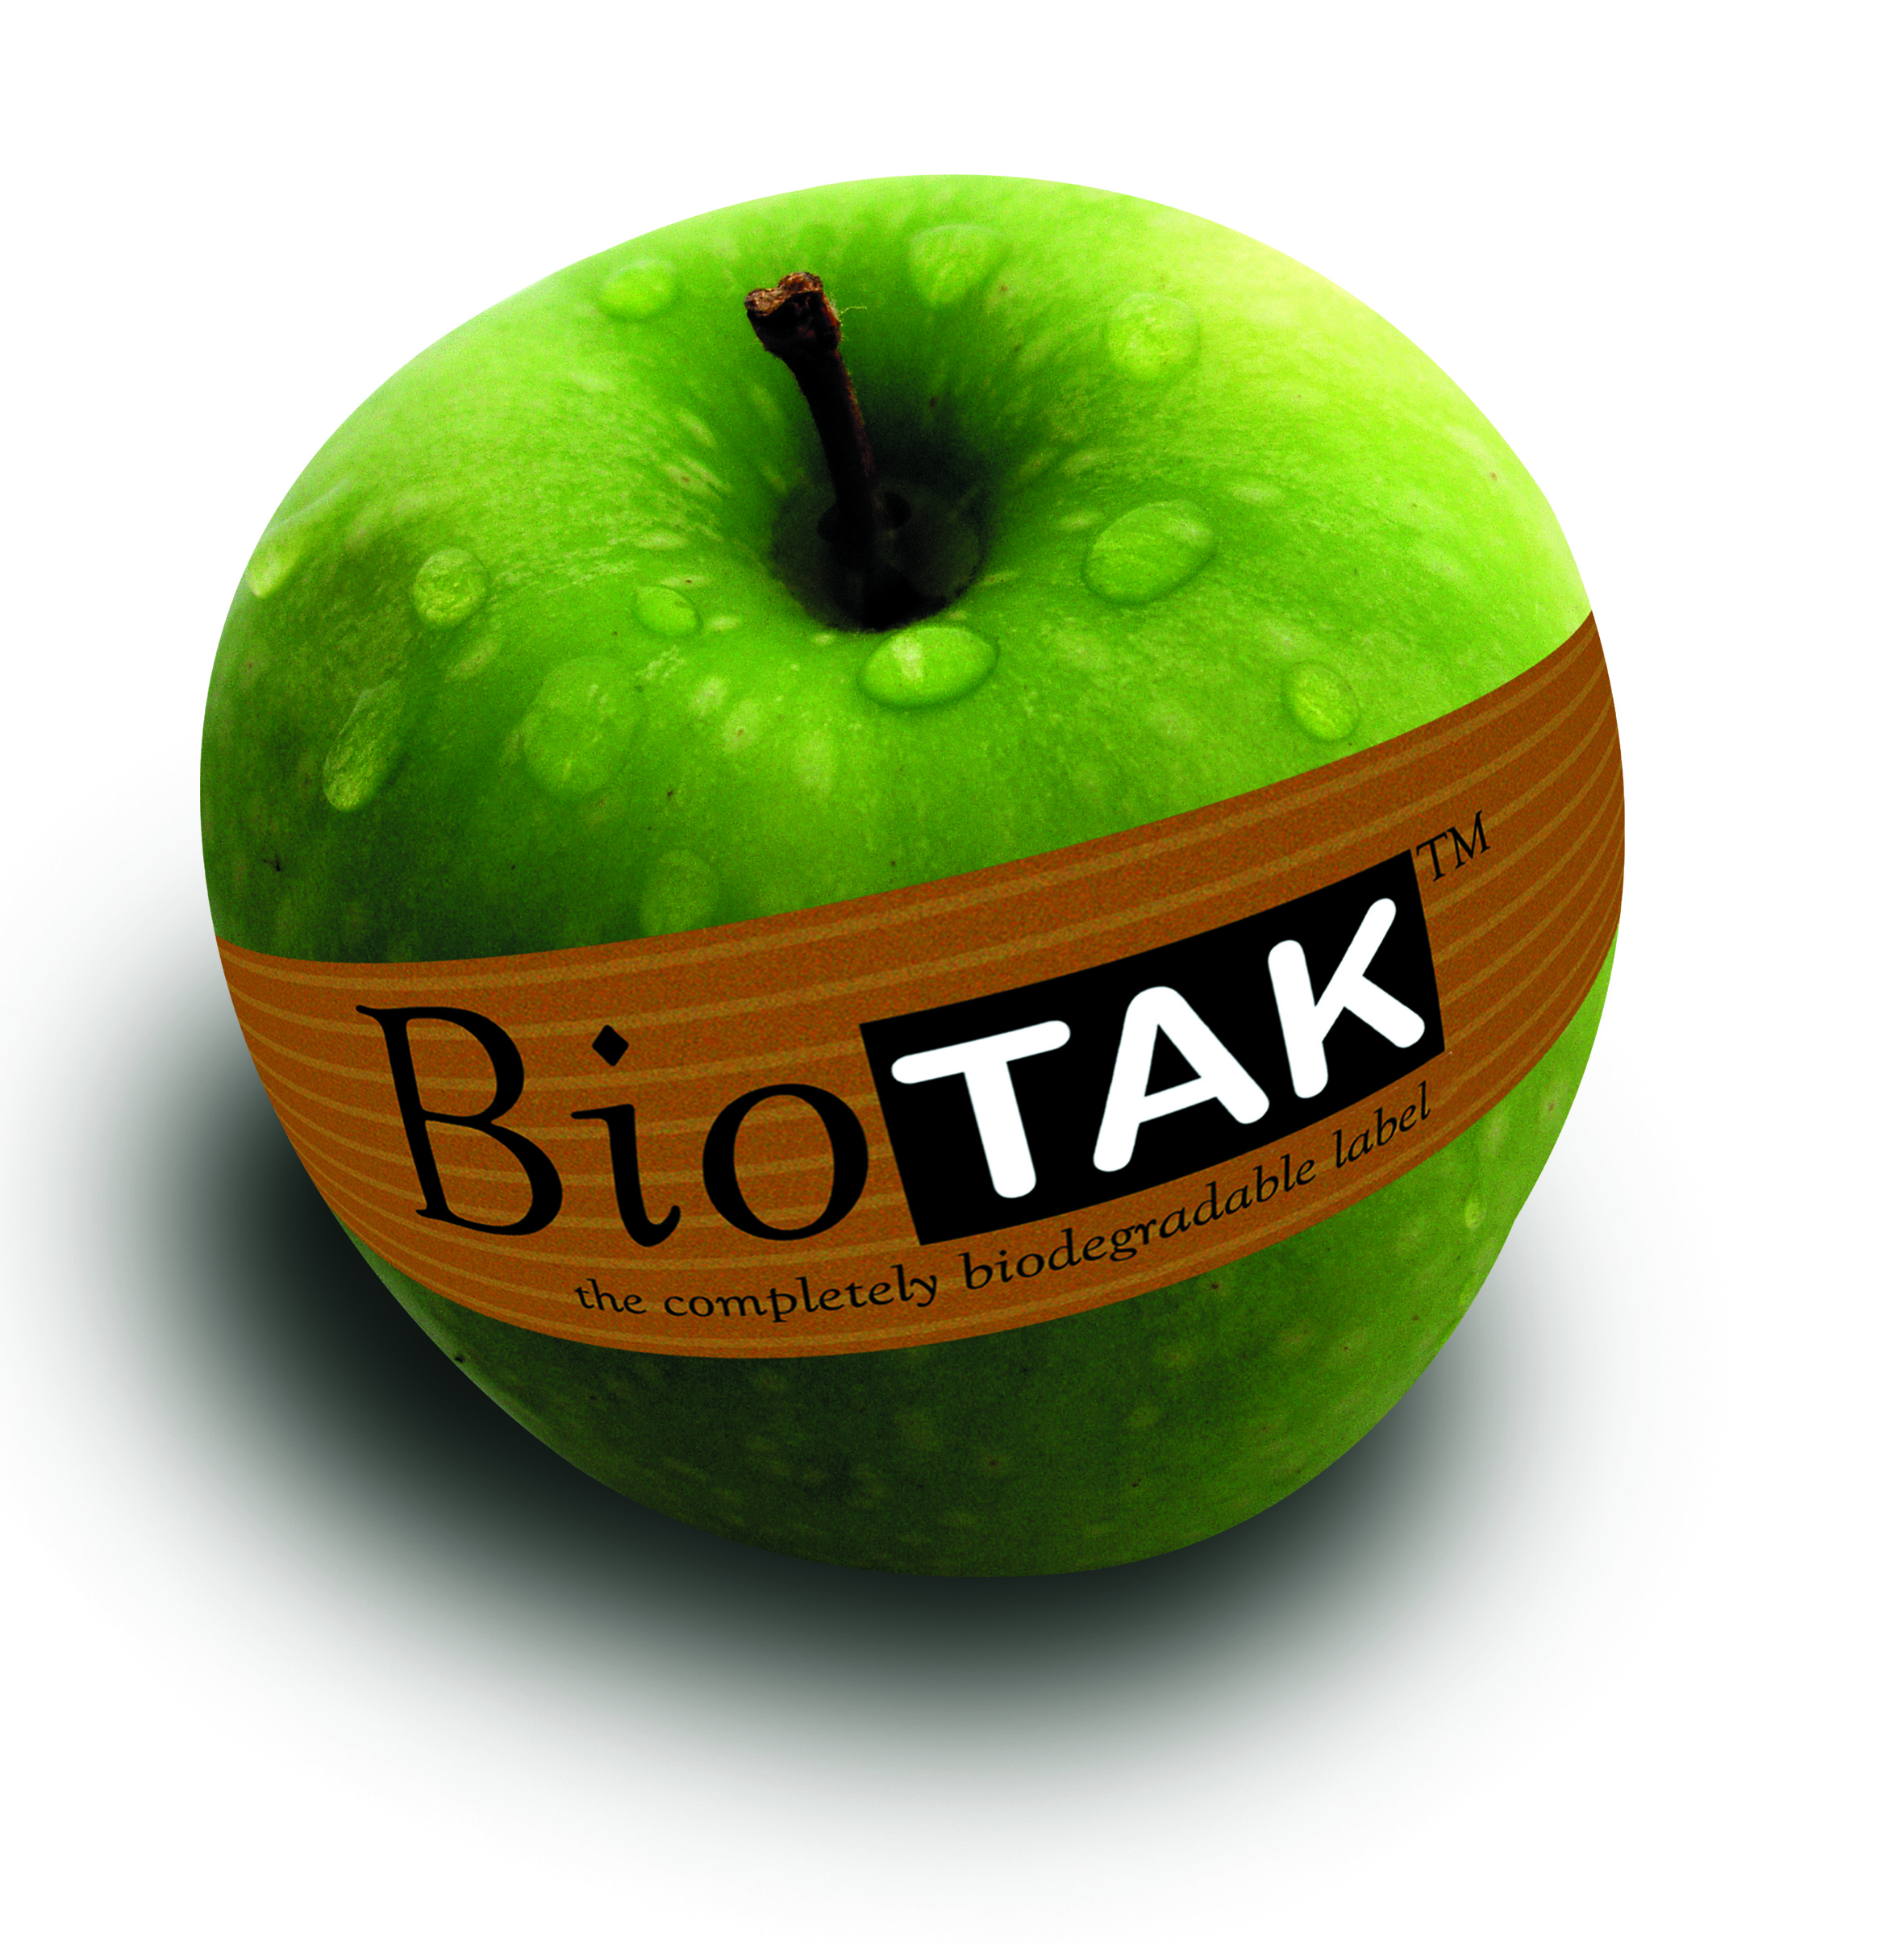 Apple_biotak